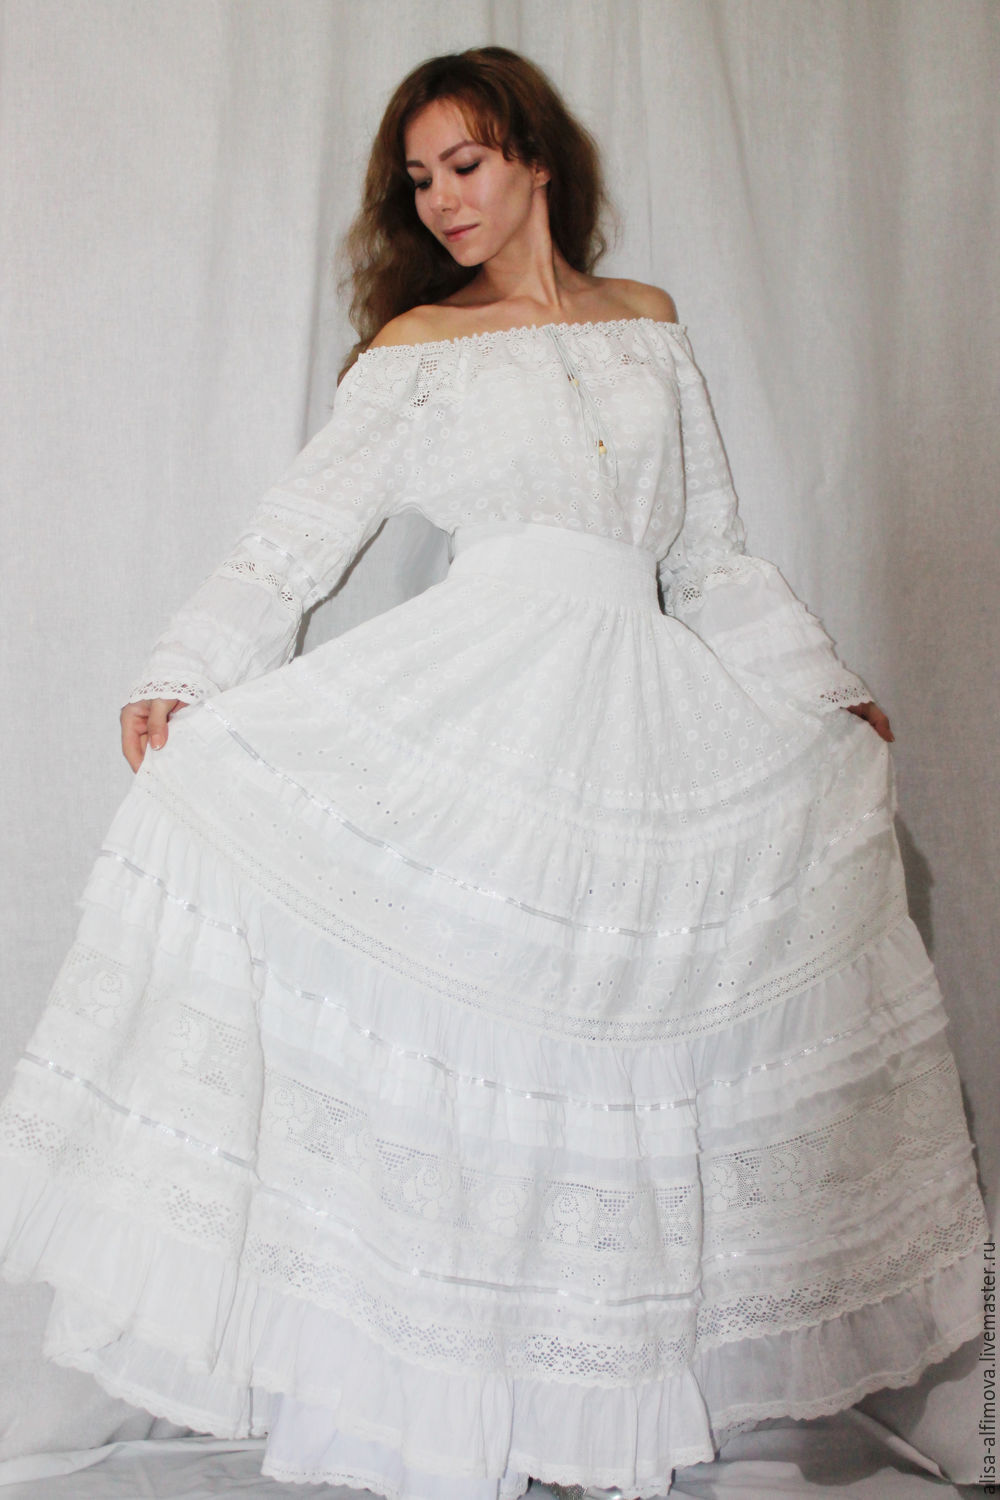 The costume is gorgeous 'White wedding'(blouse, skirt, petticoat), Dresses, Tashkent,  Фото №1